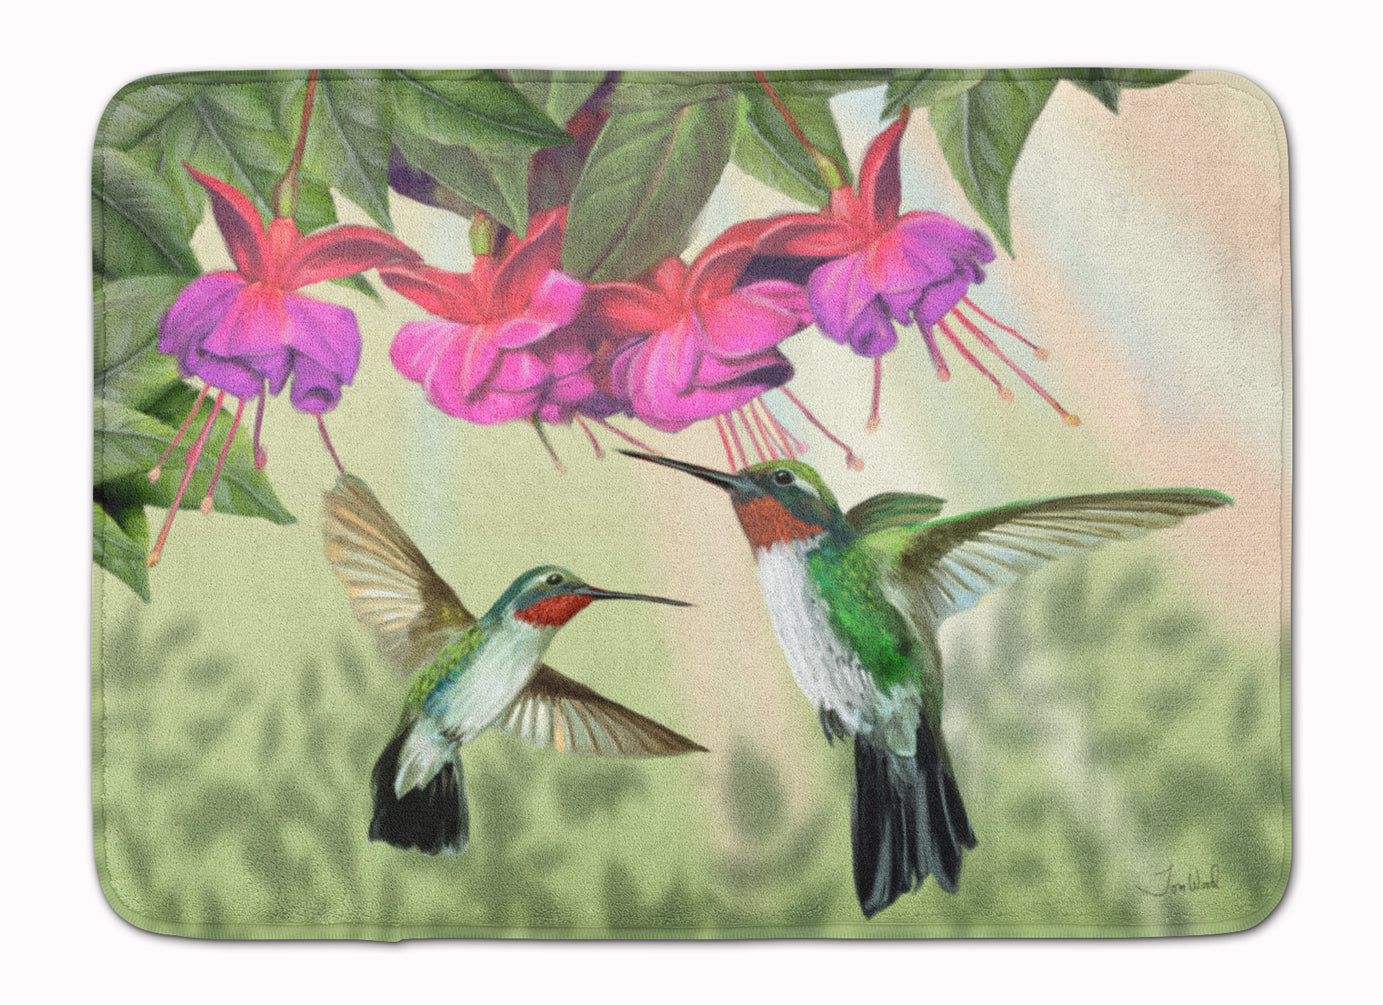 Fuchsia and Hummingbirds Machine Washable Memory Foam Mat PTW2051RUG by Caroline's Treasures